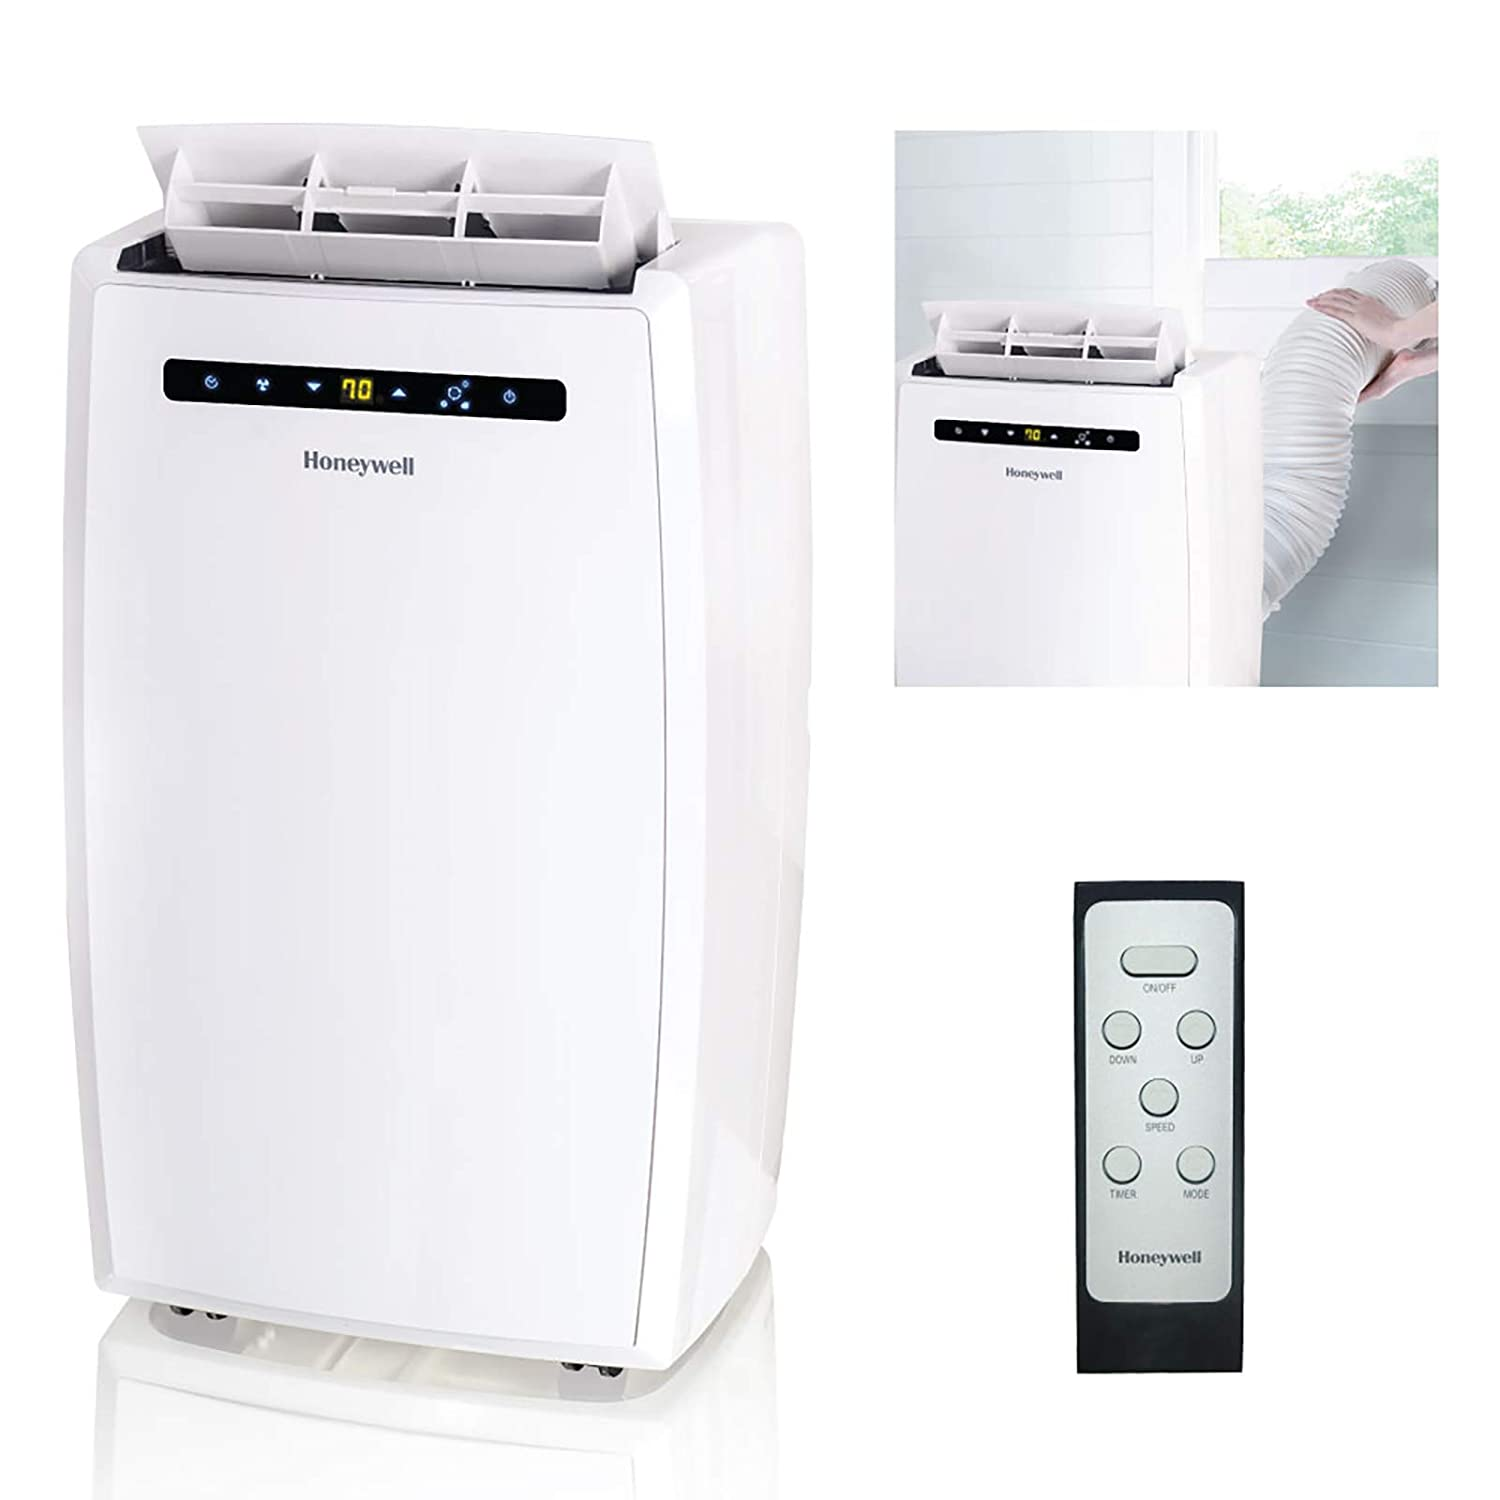 Modern Technology Small Room Air Conditioners Unit System Honeywell MN10CESWW 10000 BTU Portable Air Conditioner, Dehumidifier u0026 Fan  for Rooms Up To 350-450 Sq. Ft. with Thermal Overload Protection, Washable  Air ...